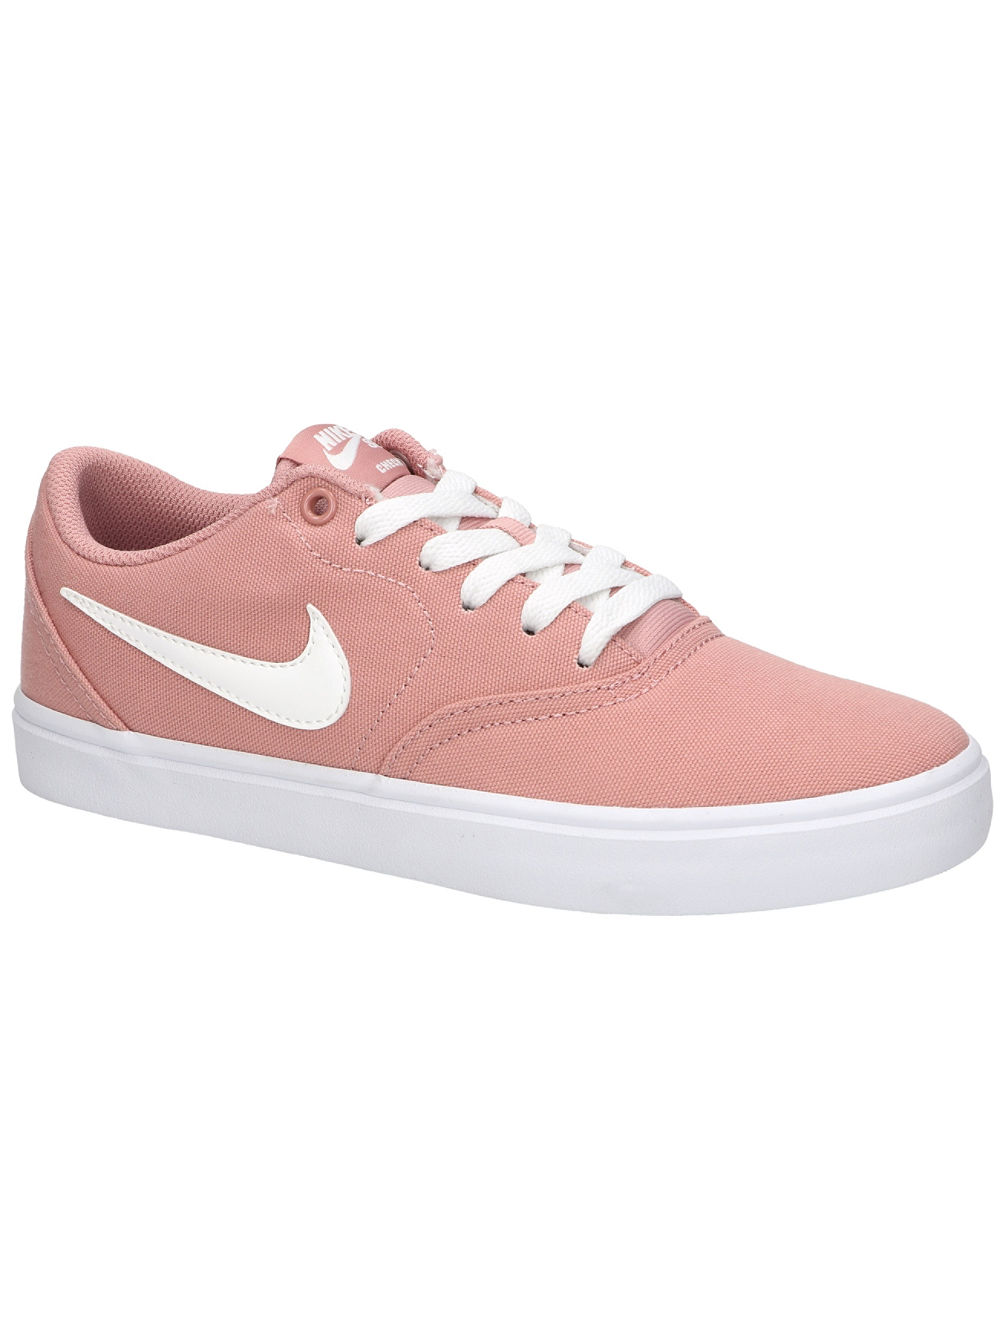 Buy Nike SB Check Solarsoft Canvas Sneakers Women online at blue-tomato.com 458464f66f